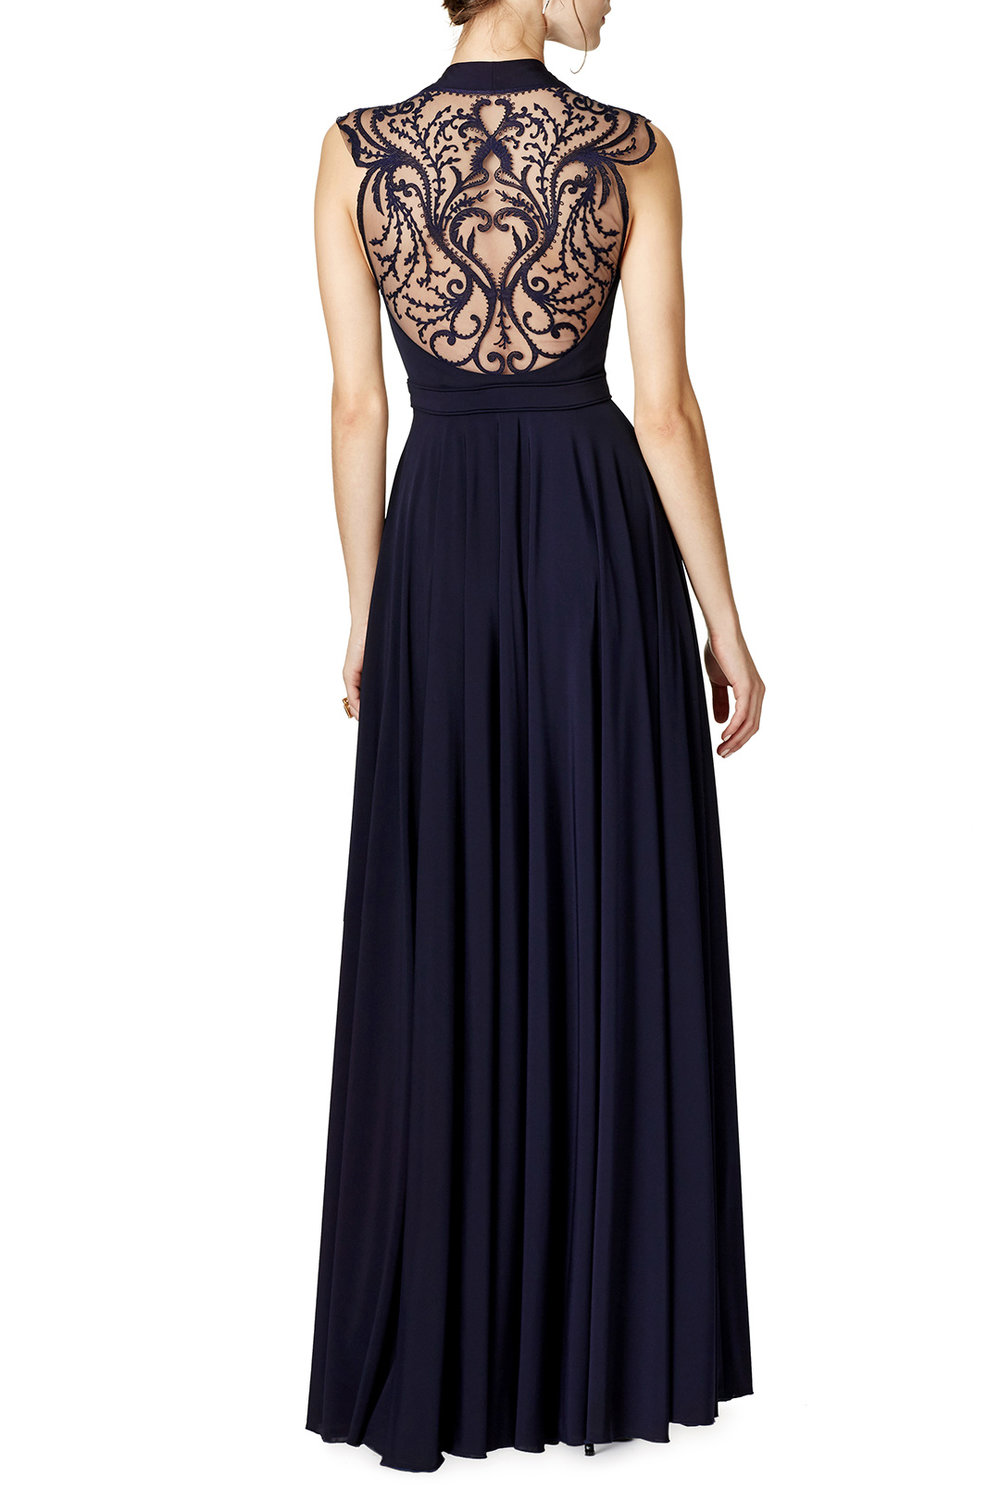 Winona Gown by Catherine Deane - Why It Works:  For those who want a truly elegant style for their engagement portraits, the Winona Gown by Catherine Deane is an excellent choice. The gorgeous dark purple color is rich and romantic while the lace insert back brings a delicate and interesting element.